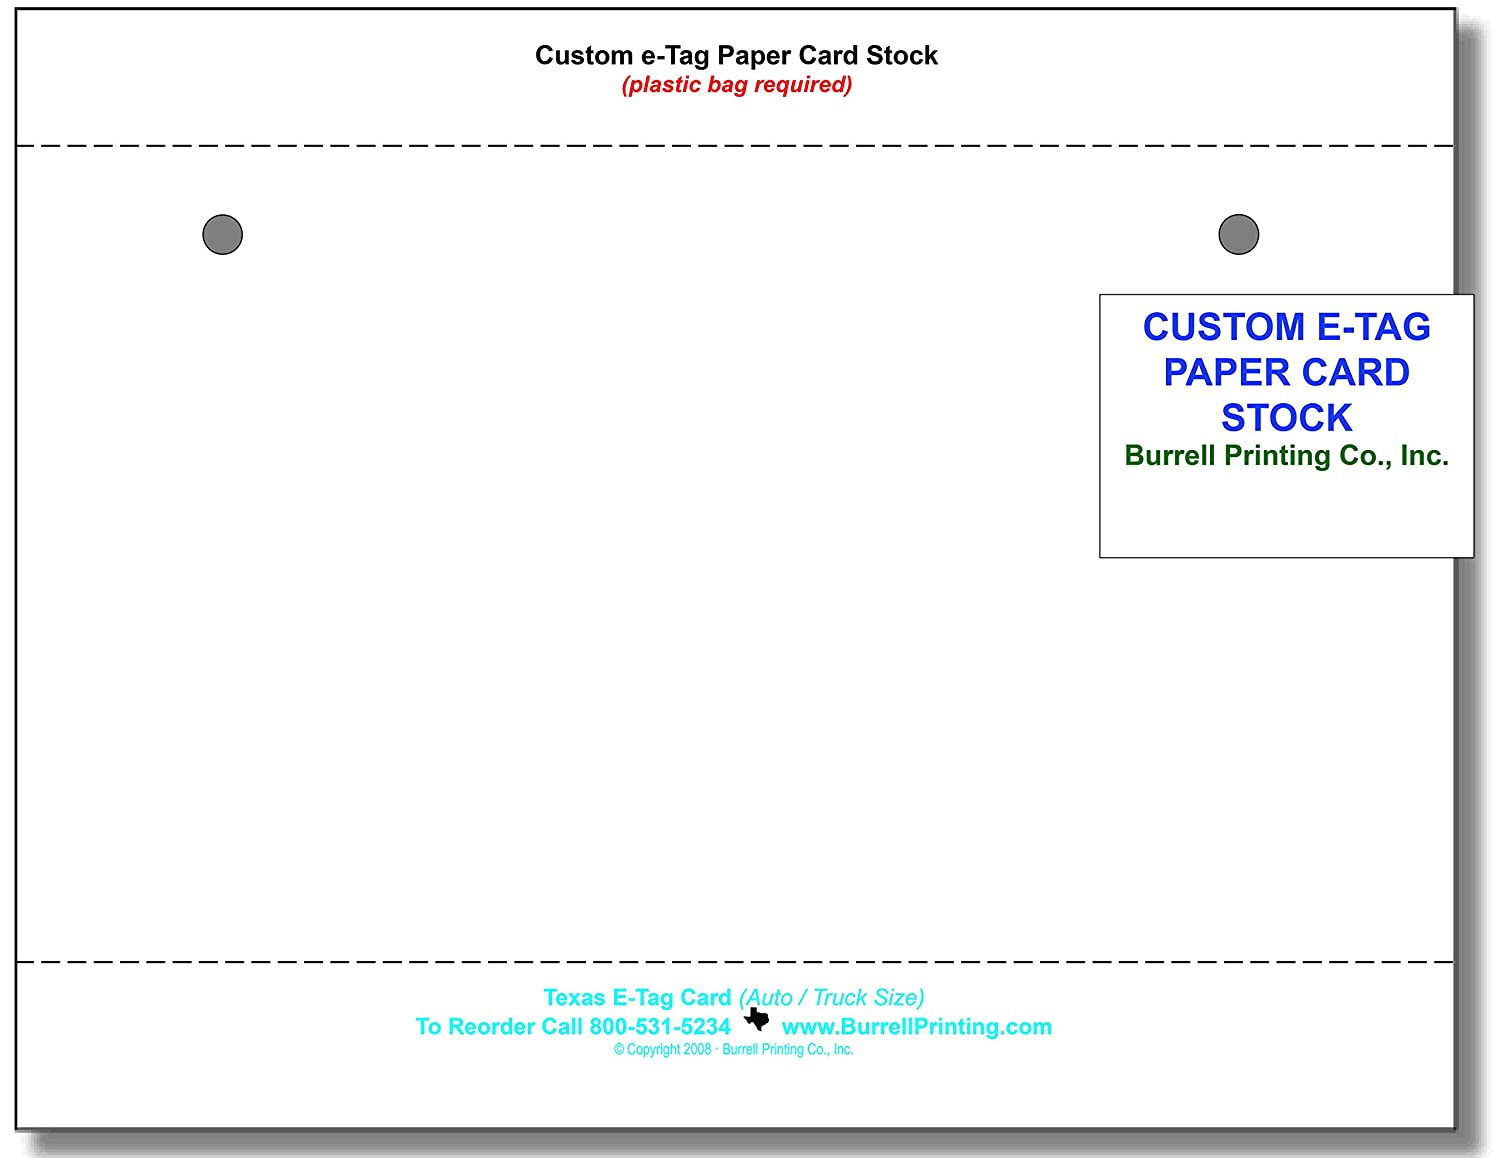 Blank Printable Temporary Tags Pack of 50 E-Tag Custom Sheets for Car Dealers